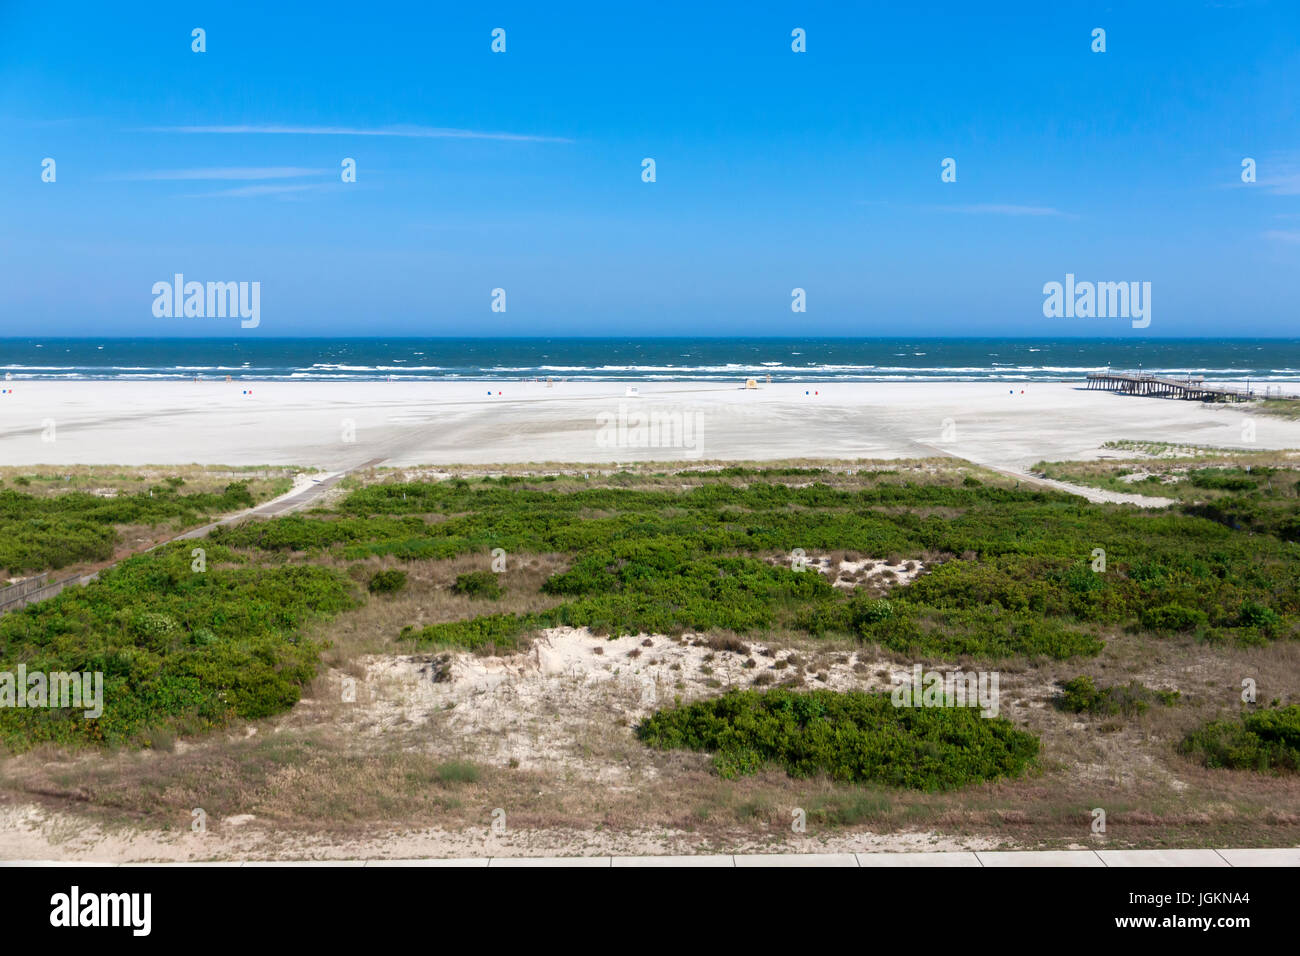 The very wide beach in Wildwood Crest, New Jersey, United States. - Stock Image